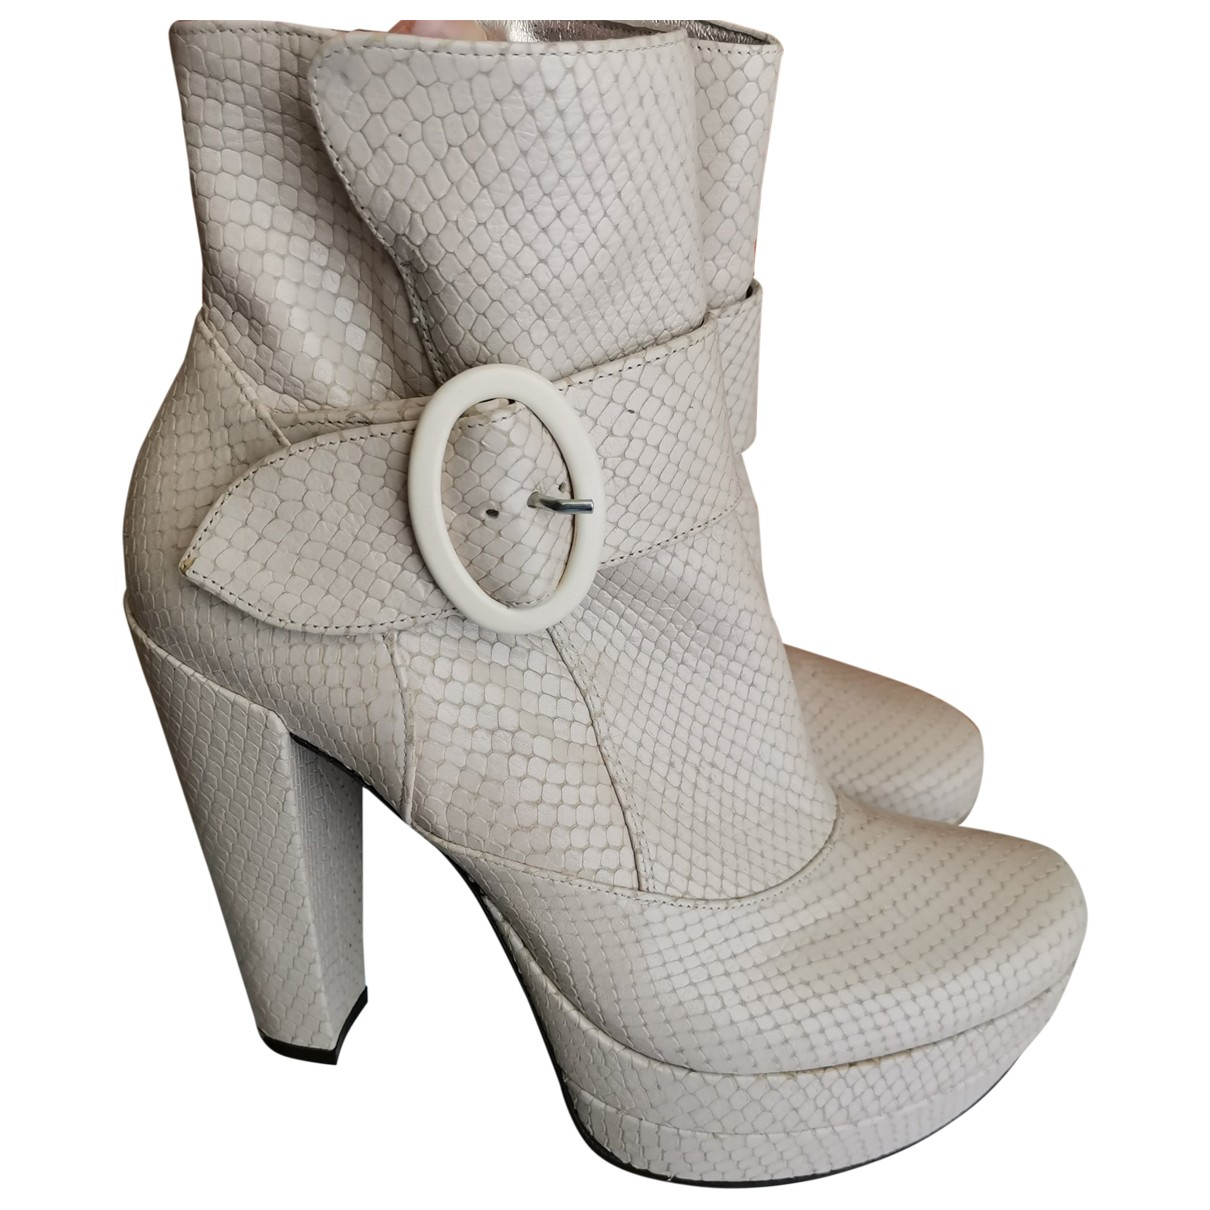 Free Lance \N Beige Leather Ankle boots for Women 37 EU